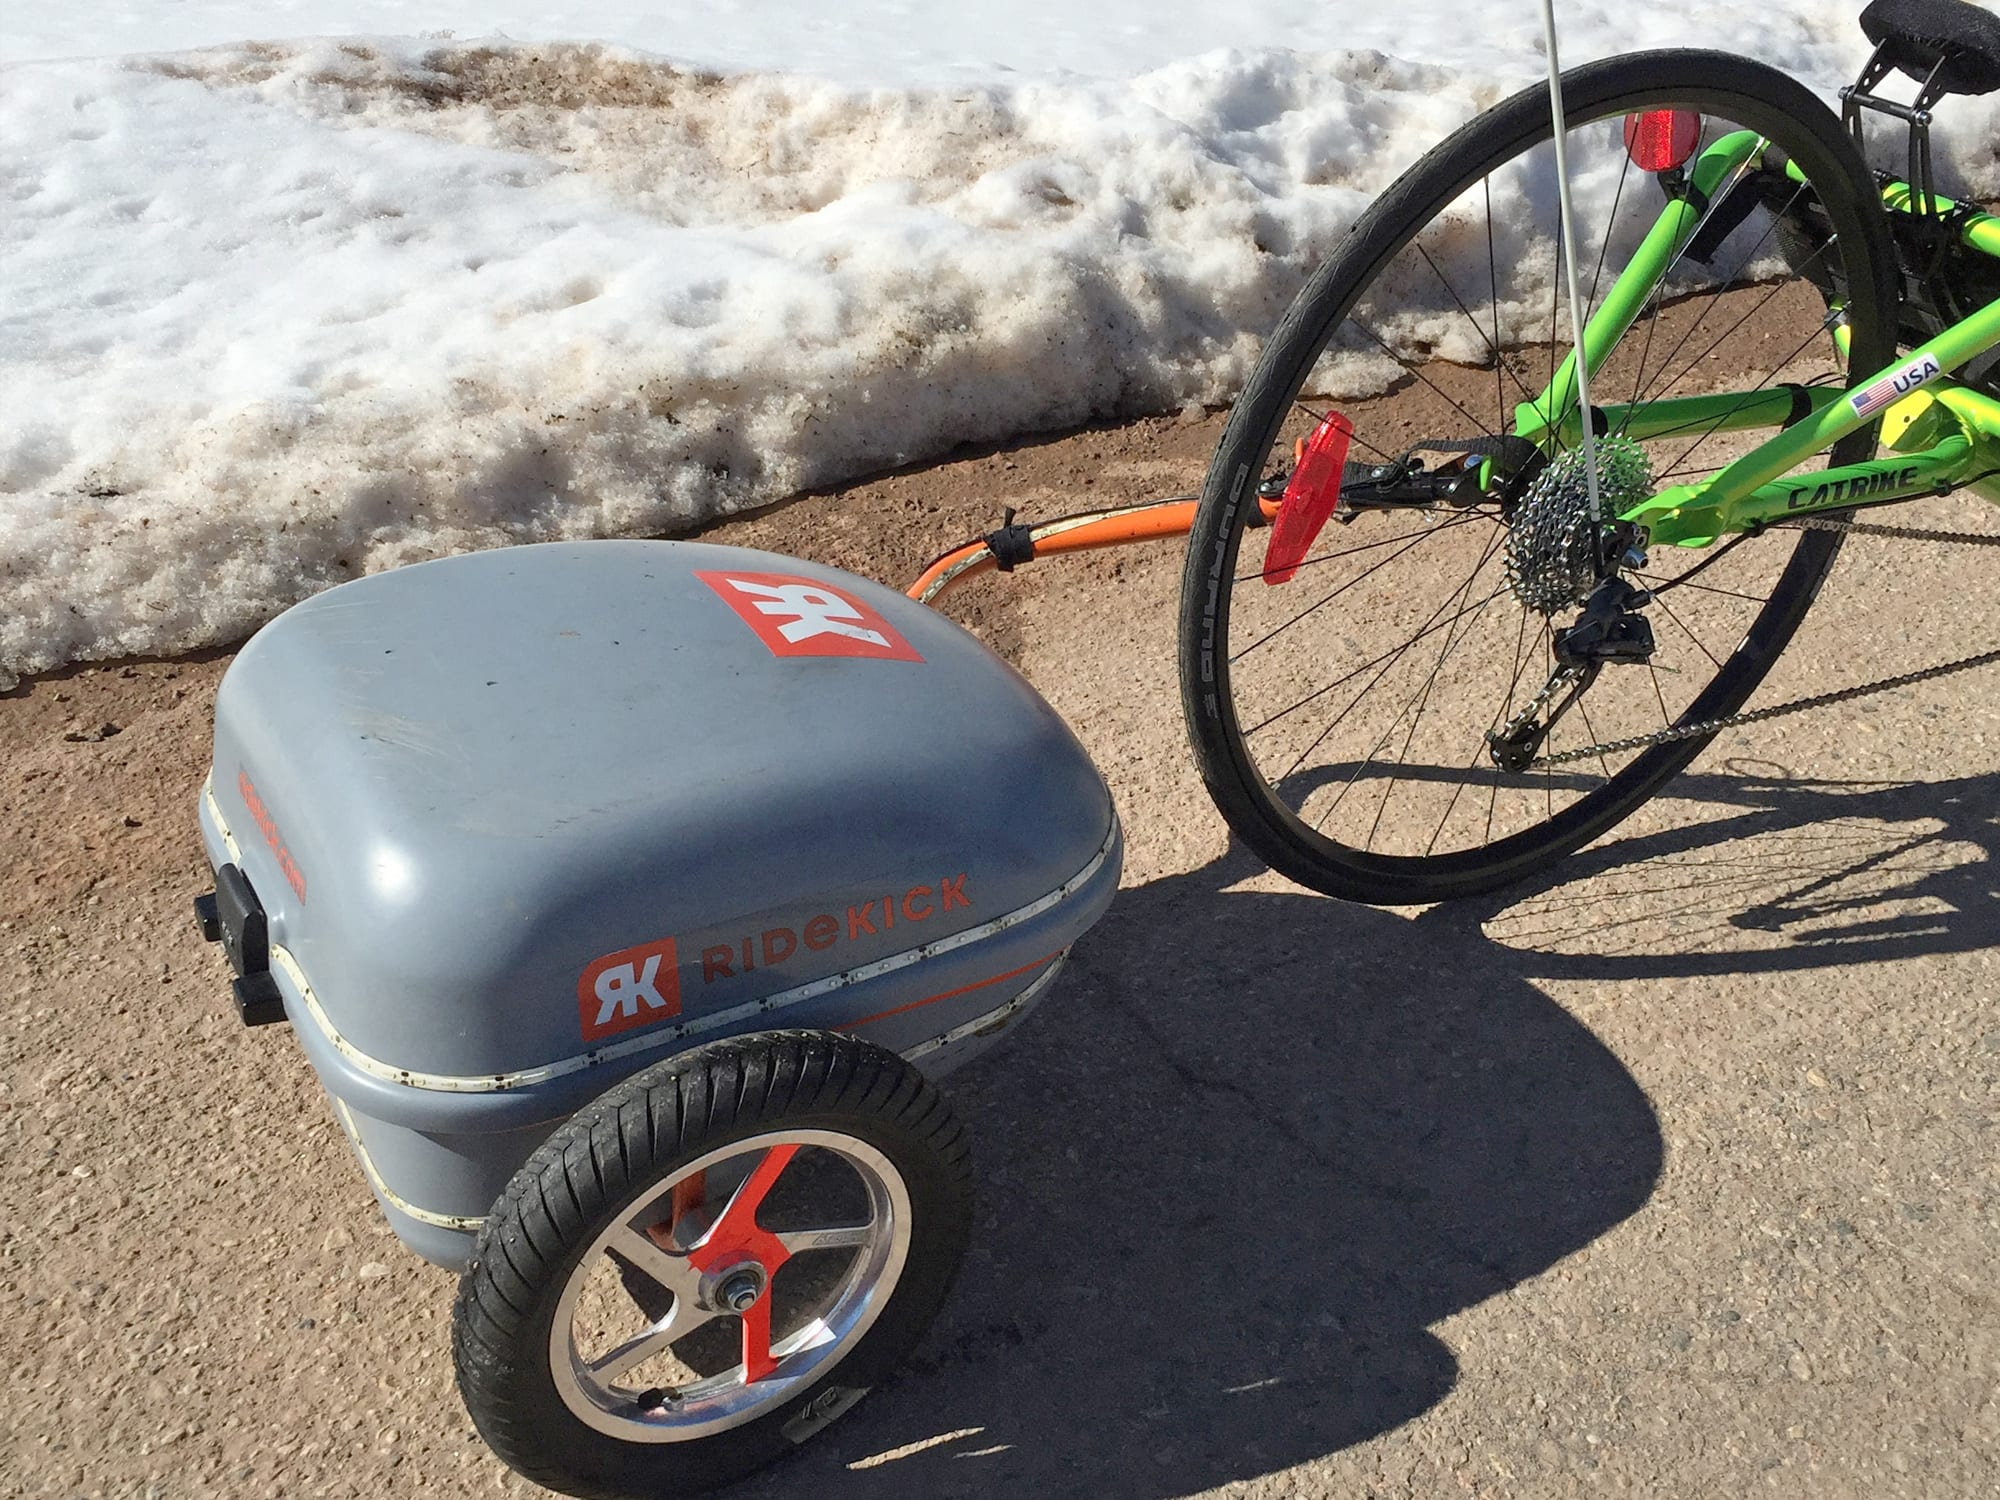 Ridekick Power Trailer Review Prices Specs Videos Photos